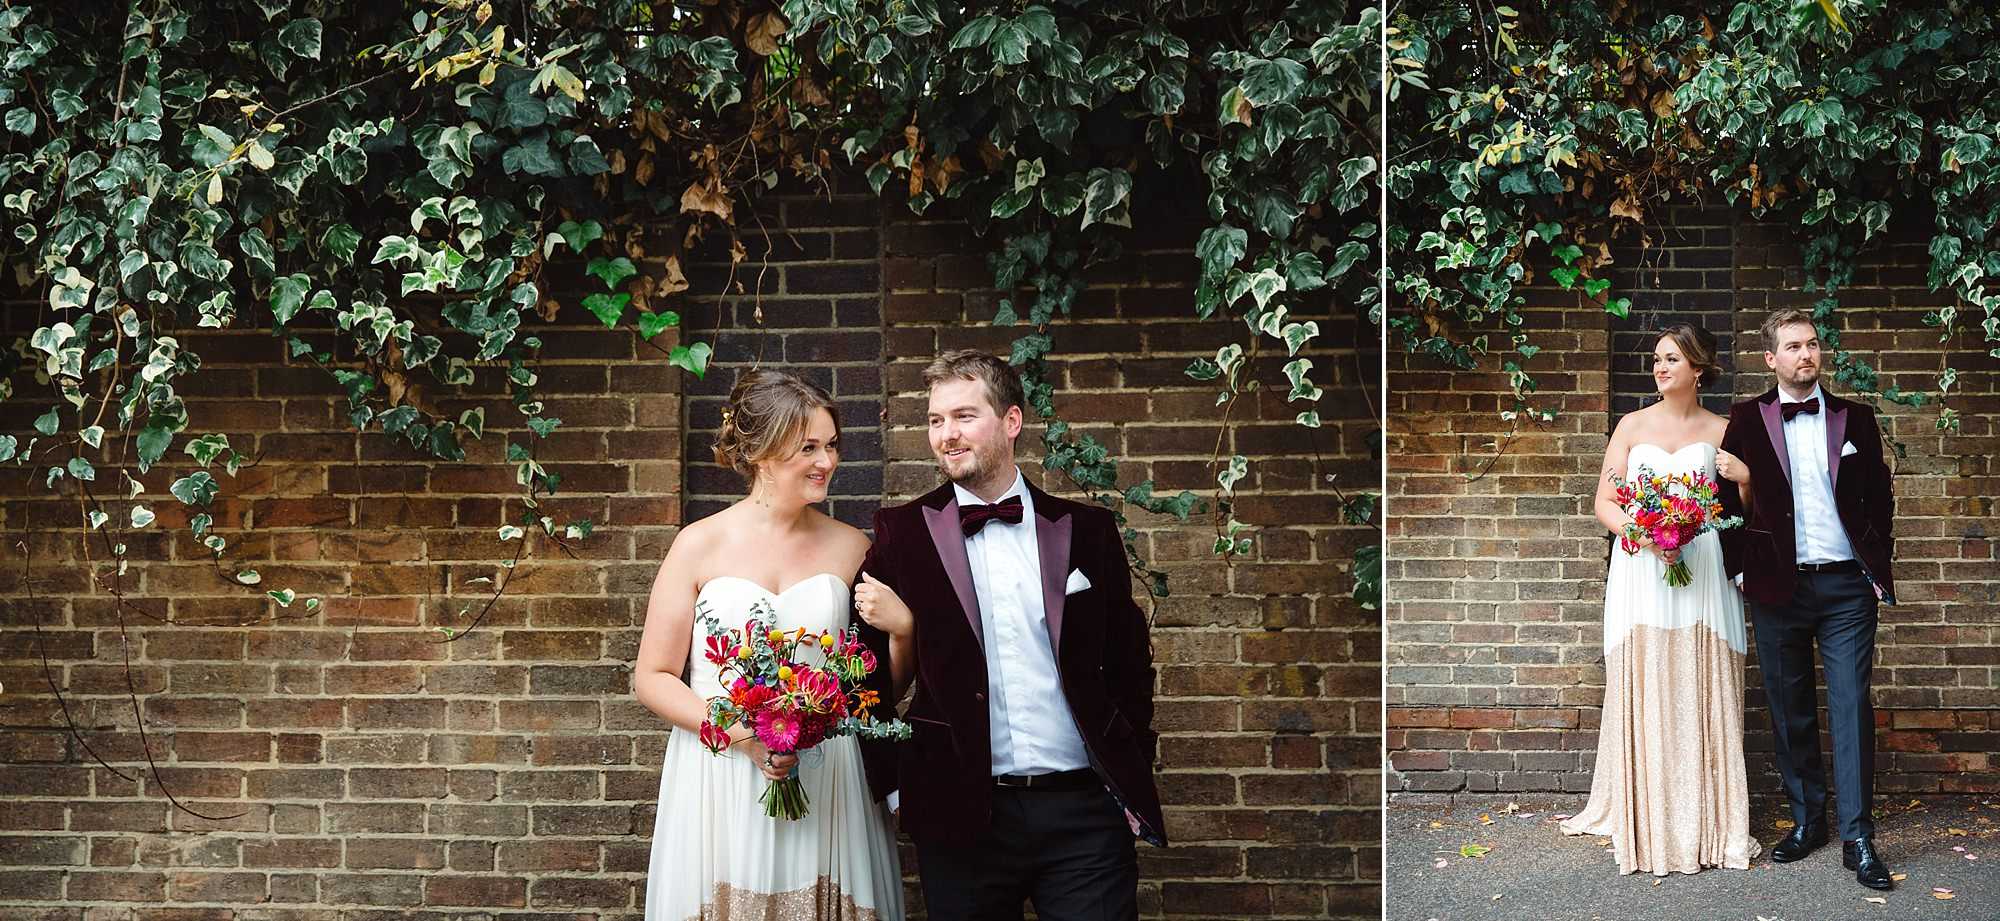 Fun London Wedding bride and groom wedding portraits in brixton